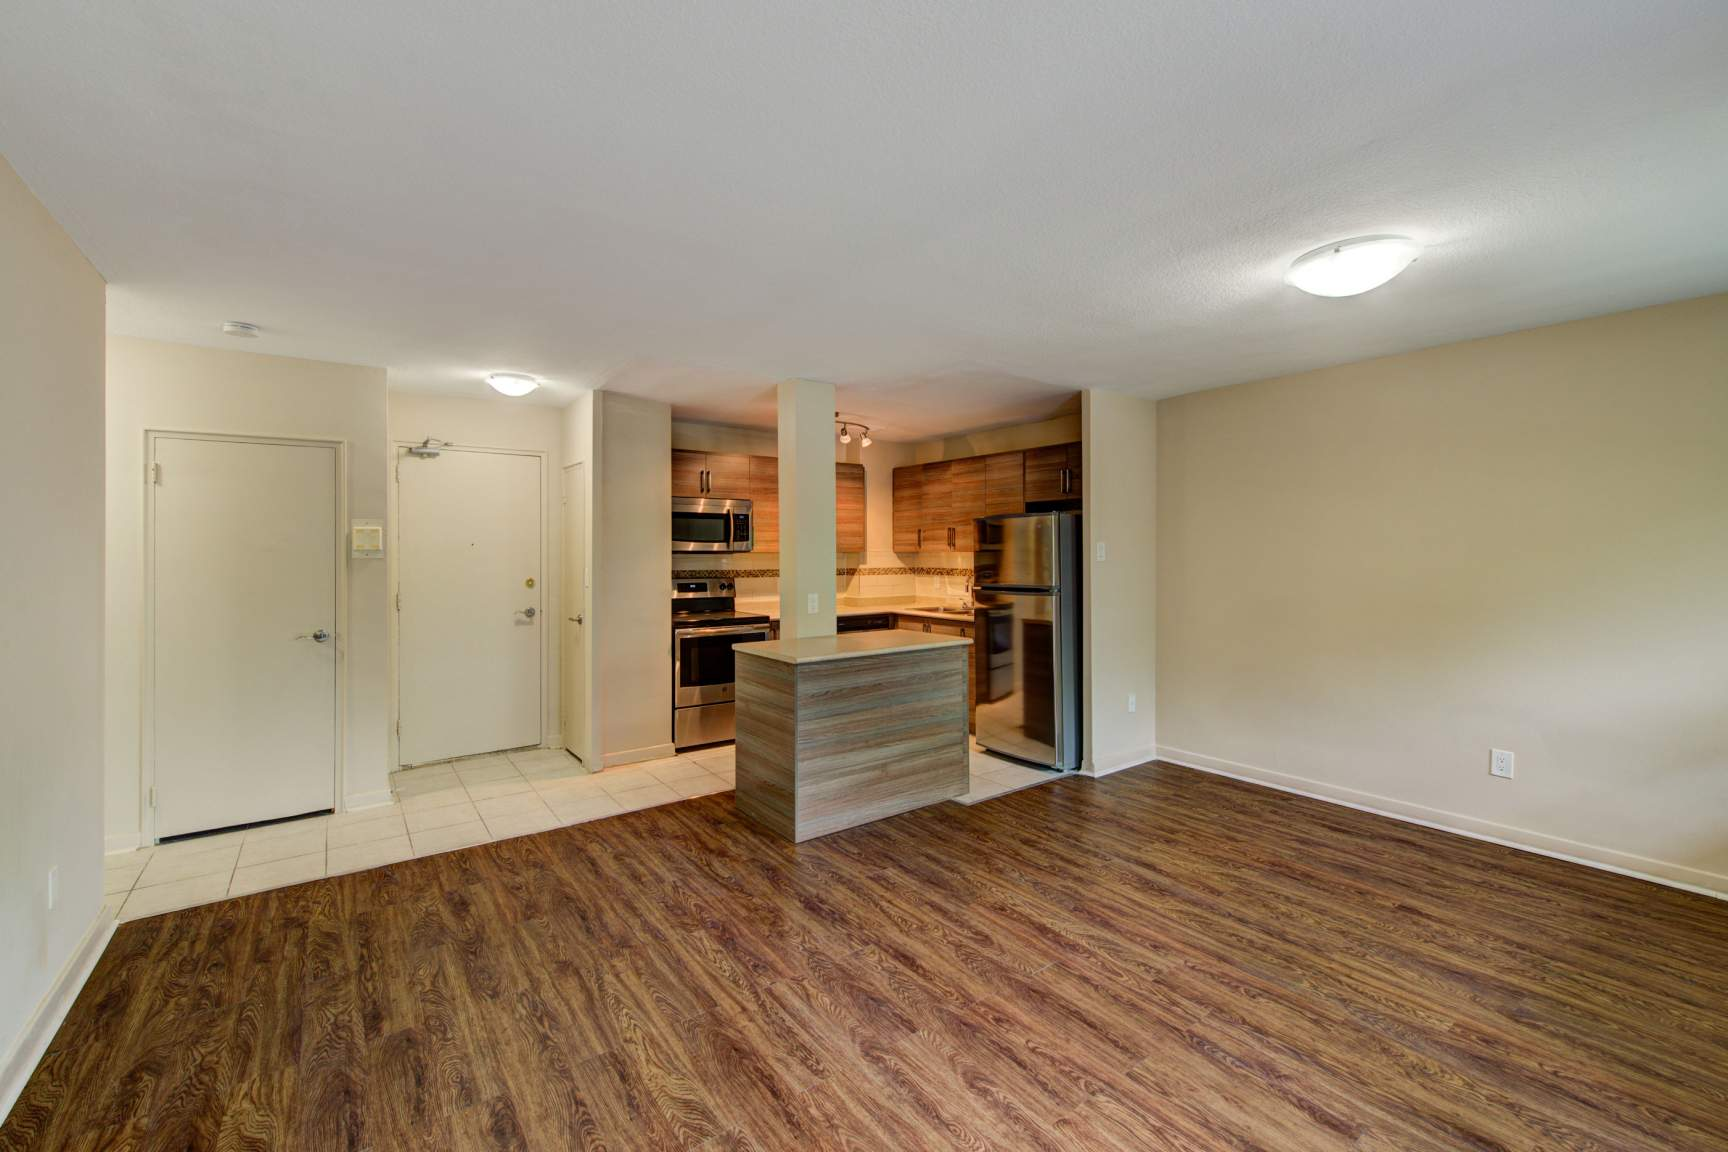 1 bedroom Apartments for rent in Etobicoke at Lake Promenade Community - Photo 08 - RentersPages – L166485